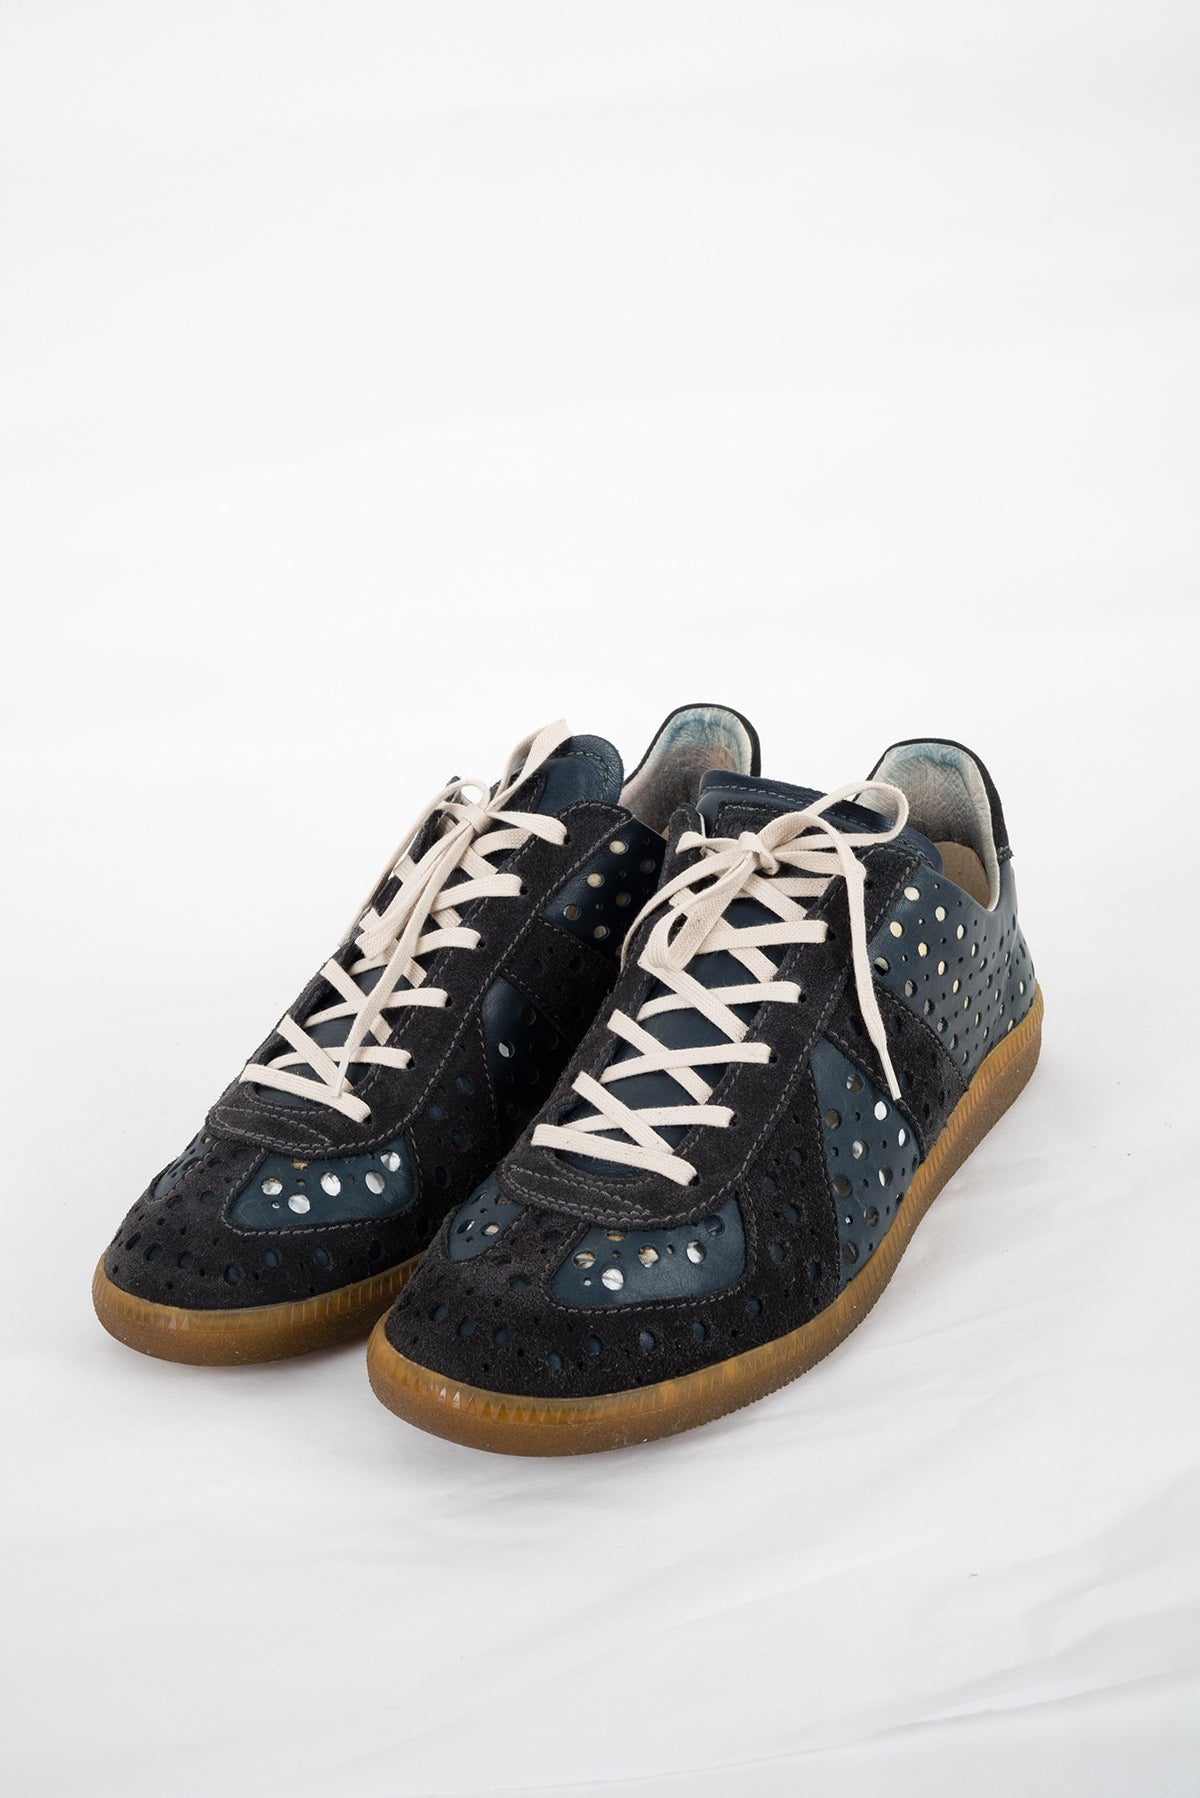 2007 S/S PUNCHED LEATHER G.A.T. SNEAKERS